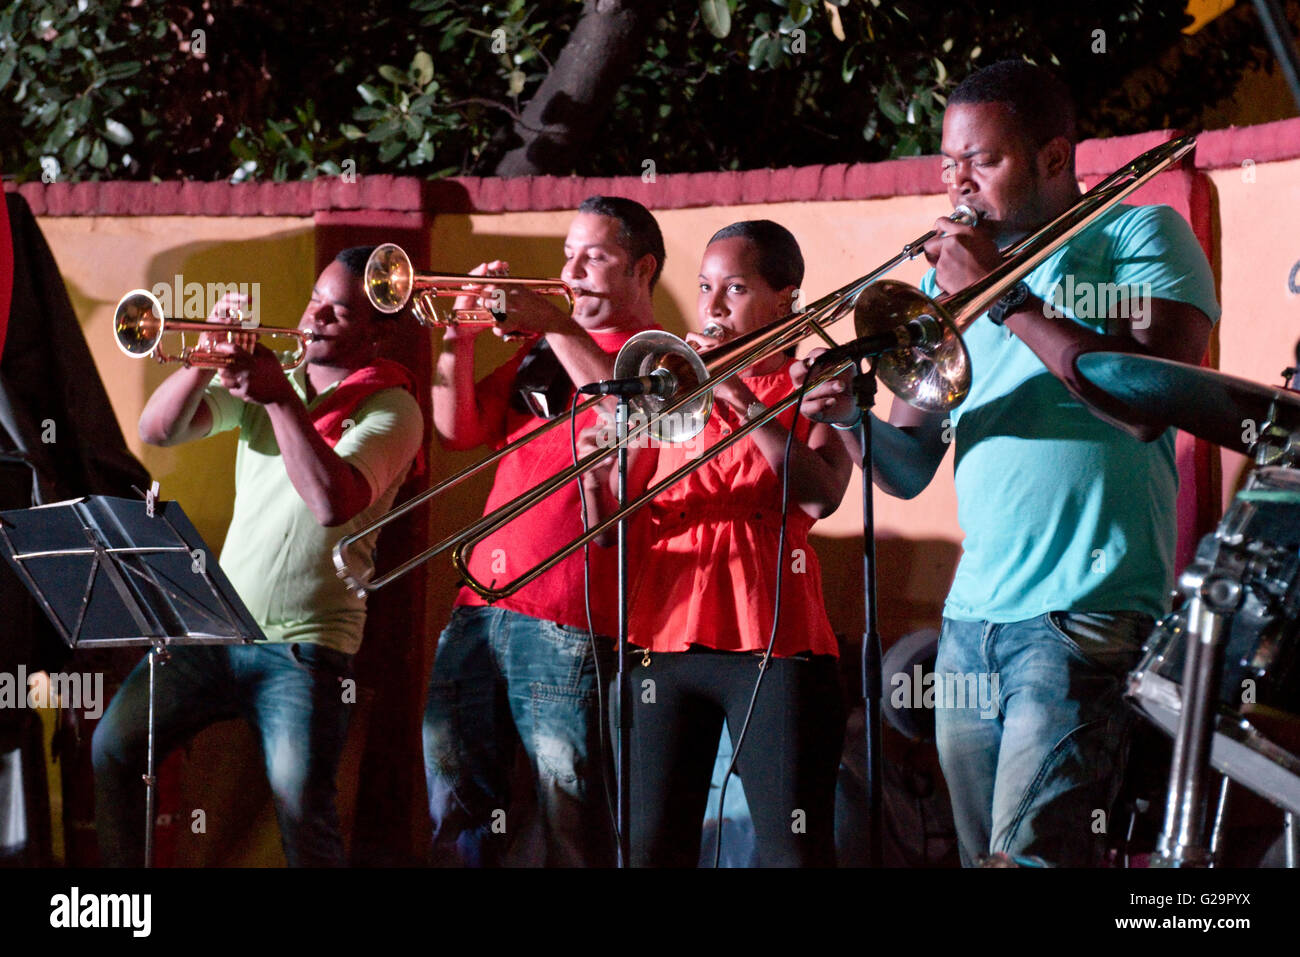 Cuban musicians playing salsa music for locals and tourists at the